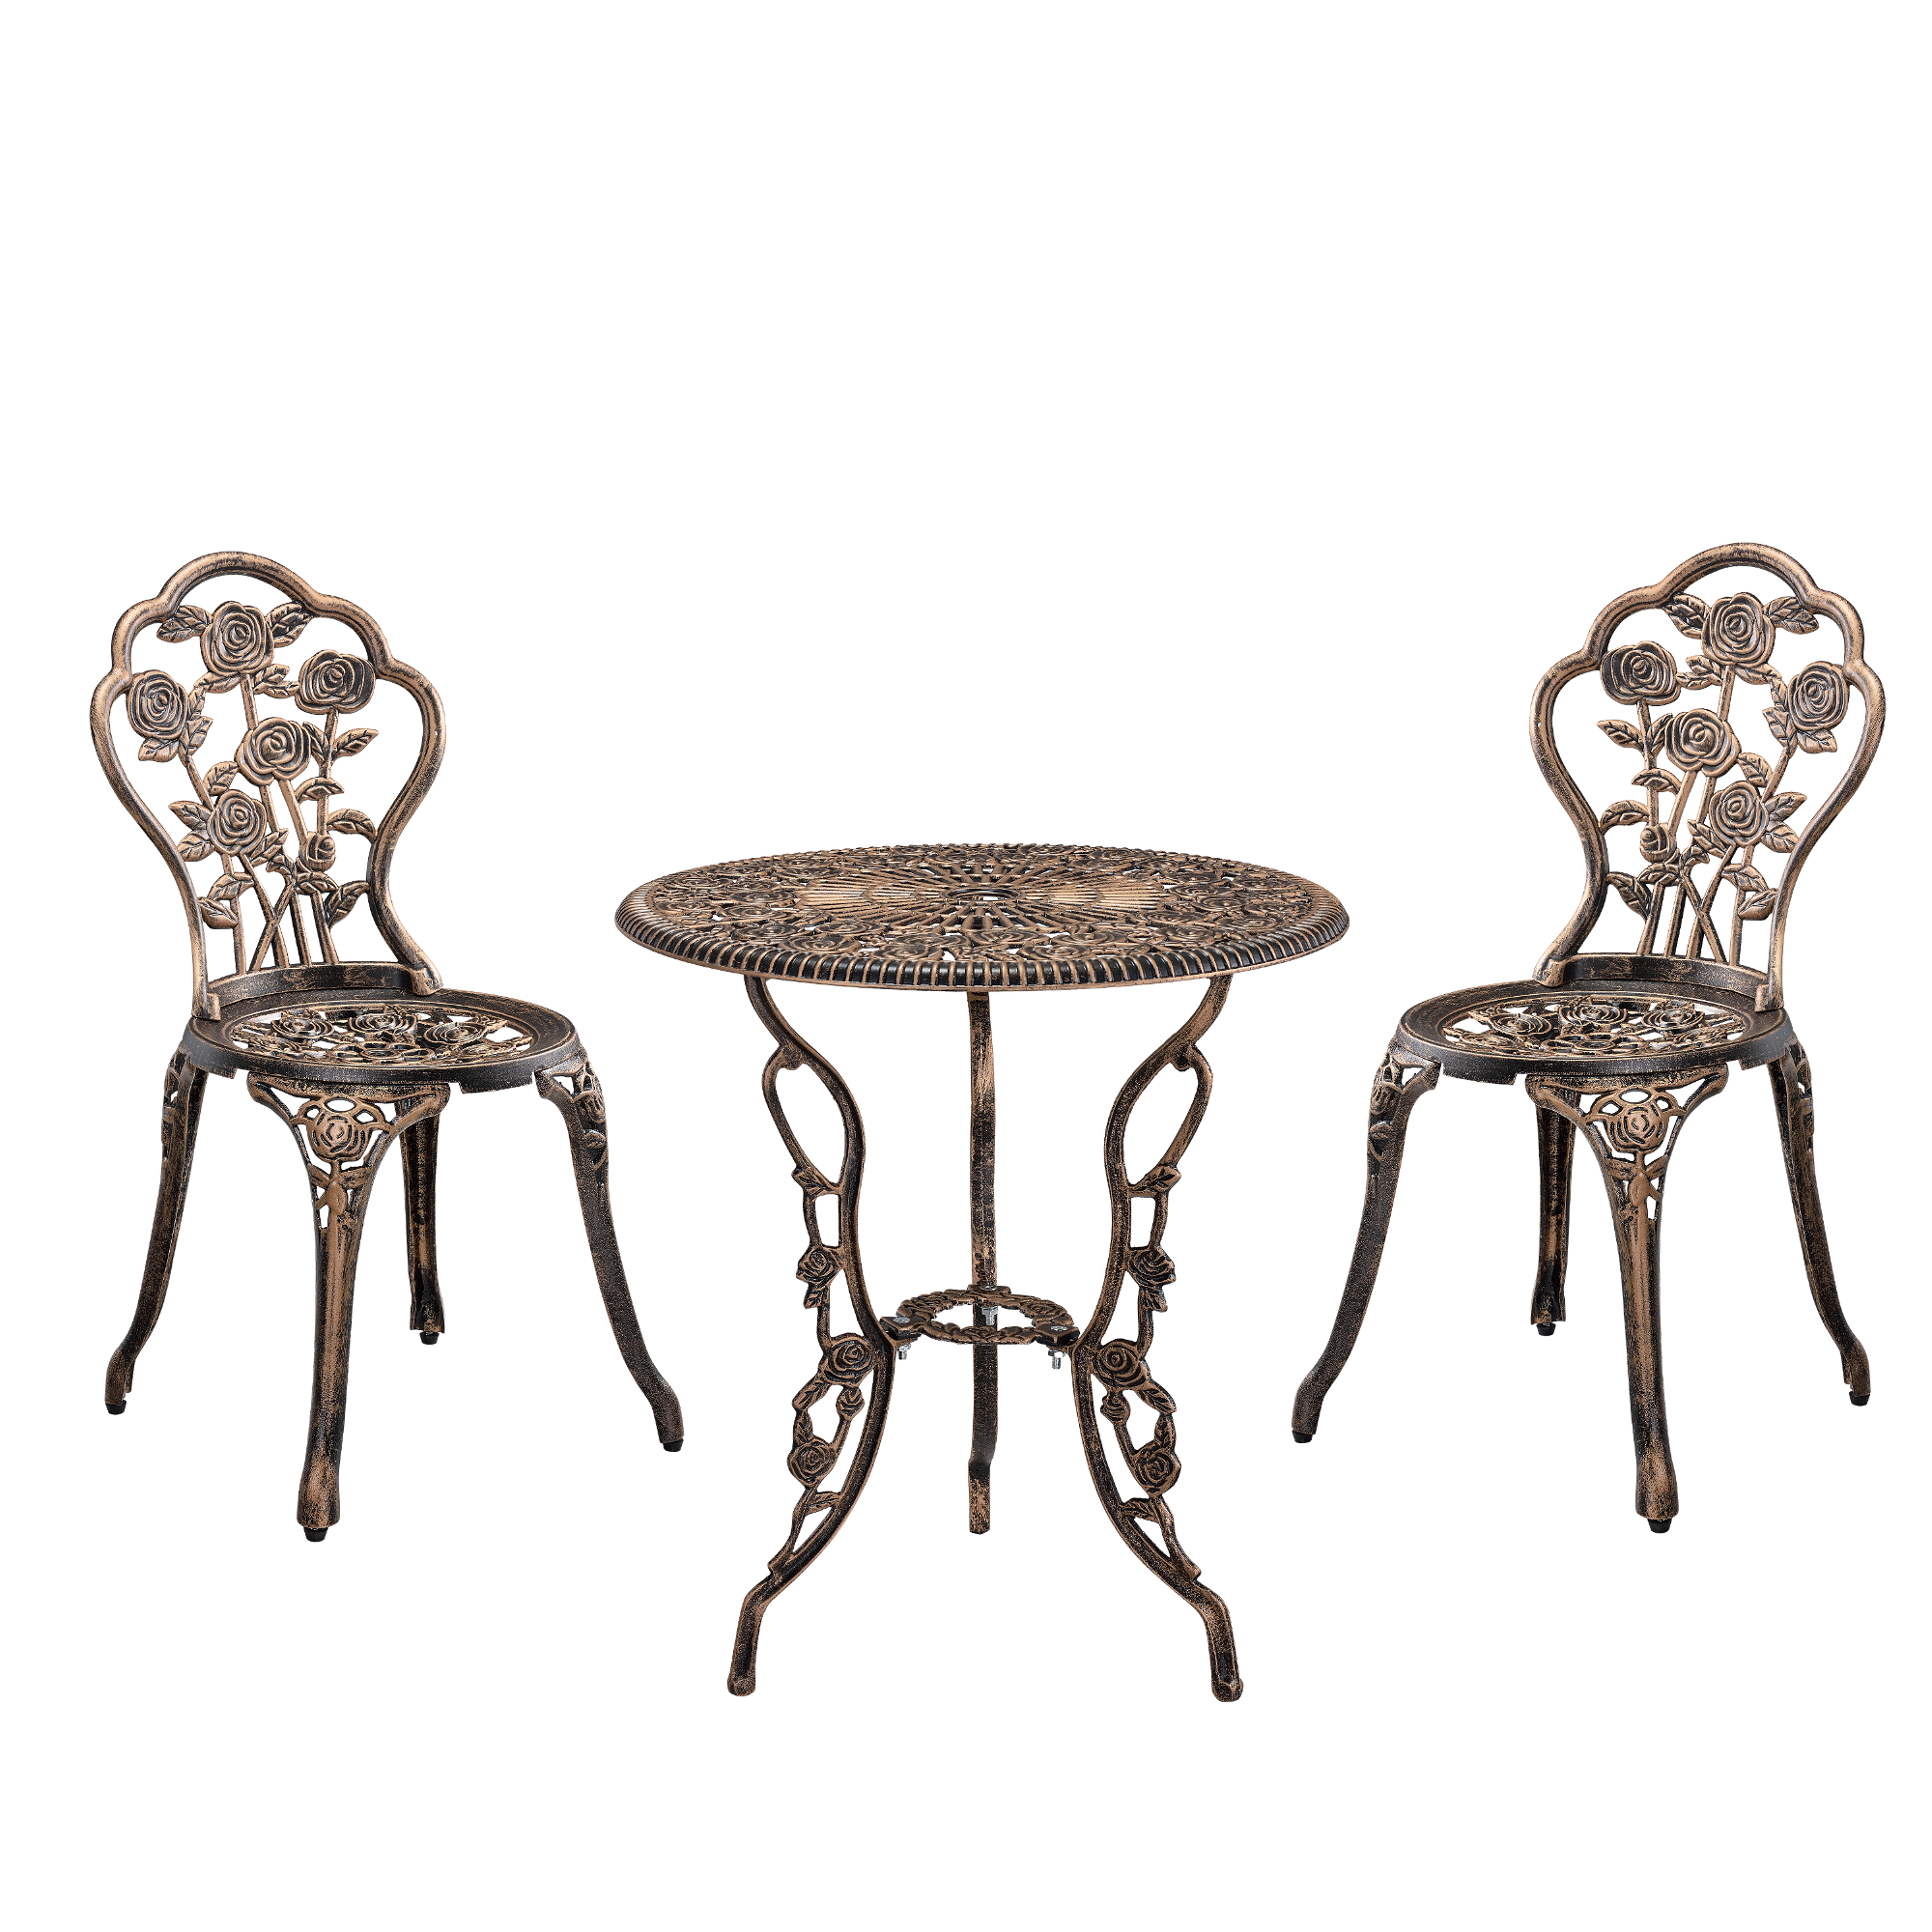 tisch 2 st hle gusseisen antik bronze bistro set garten sitzgarnitur ebay. Black Bedroom Furniture Sets. Home Design Ideas